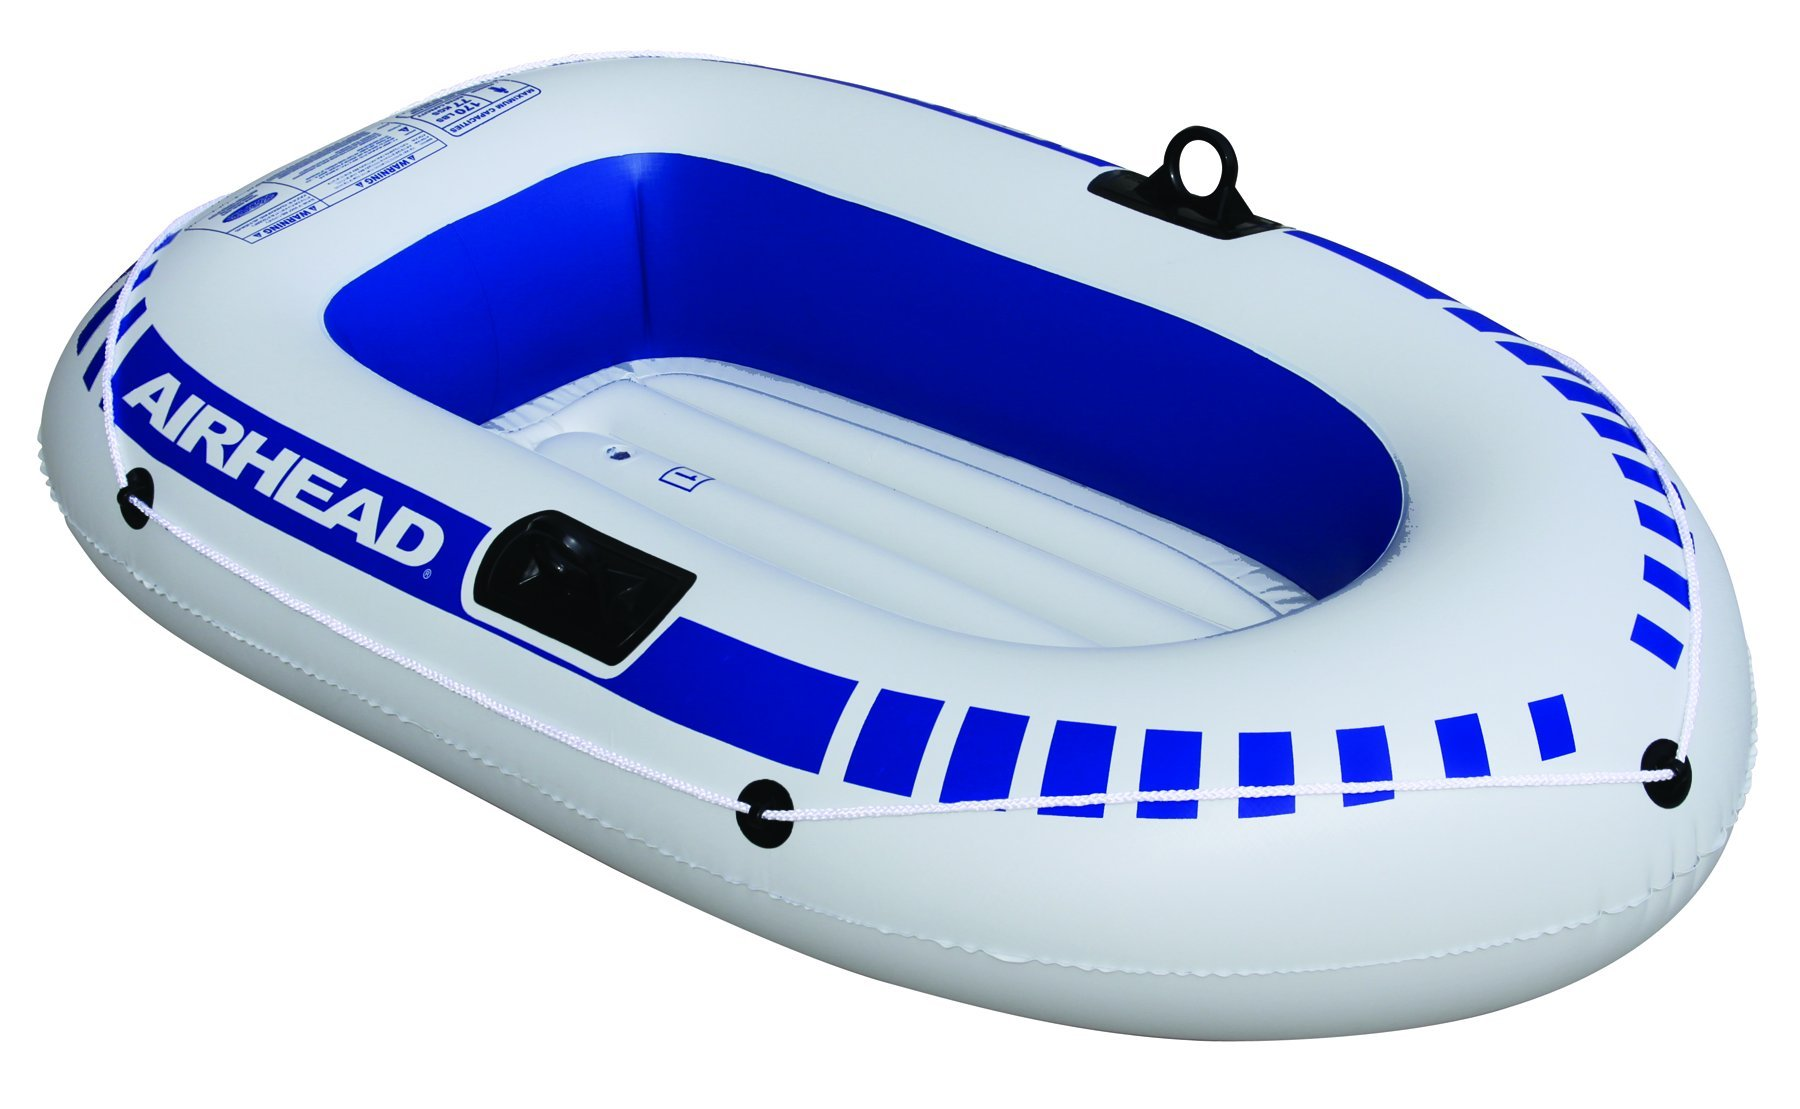 Airhead Inflatable Boat, 1 person